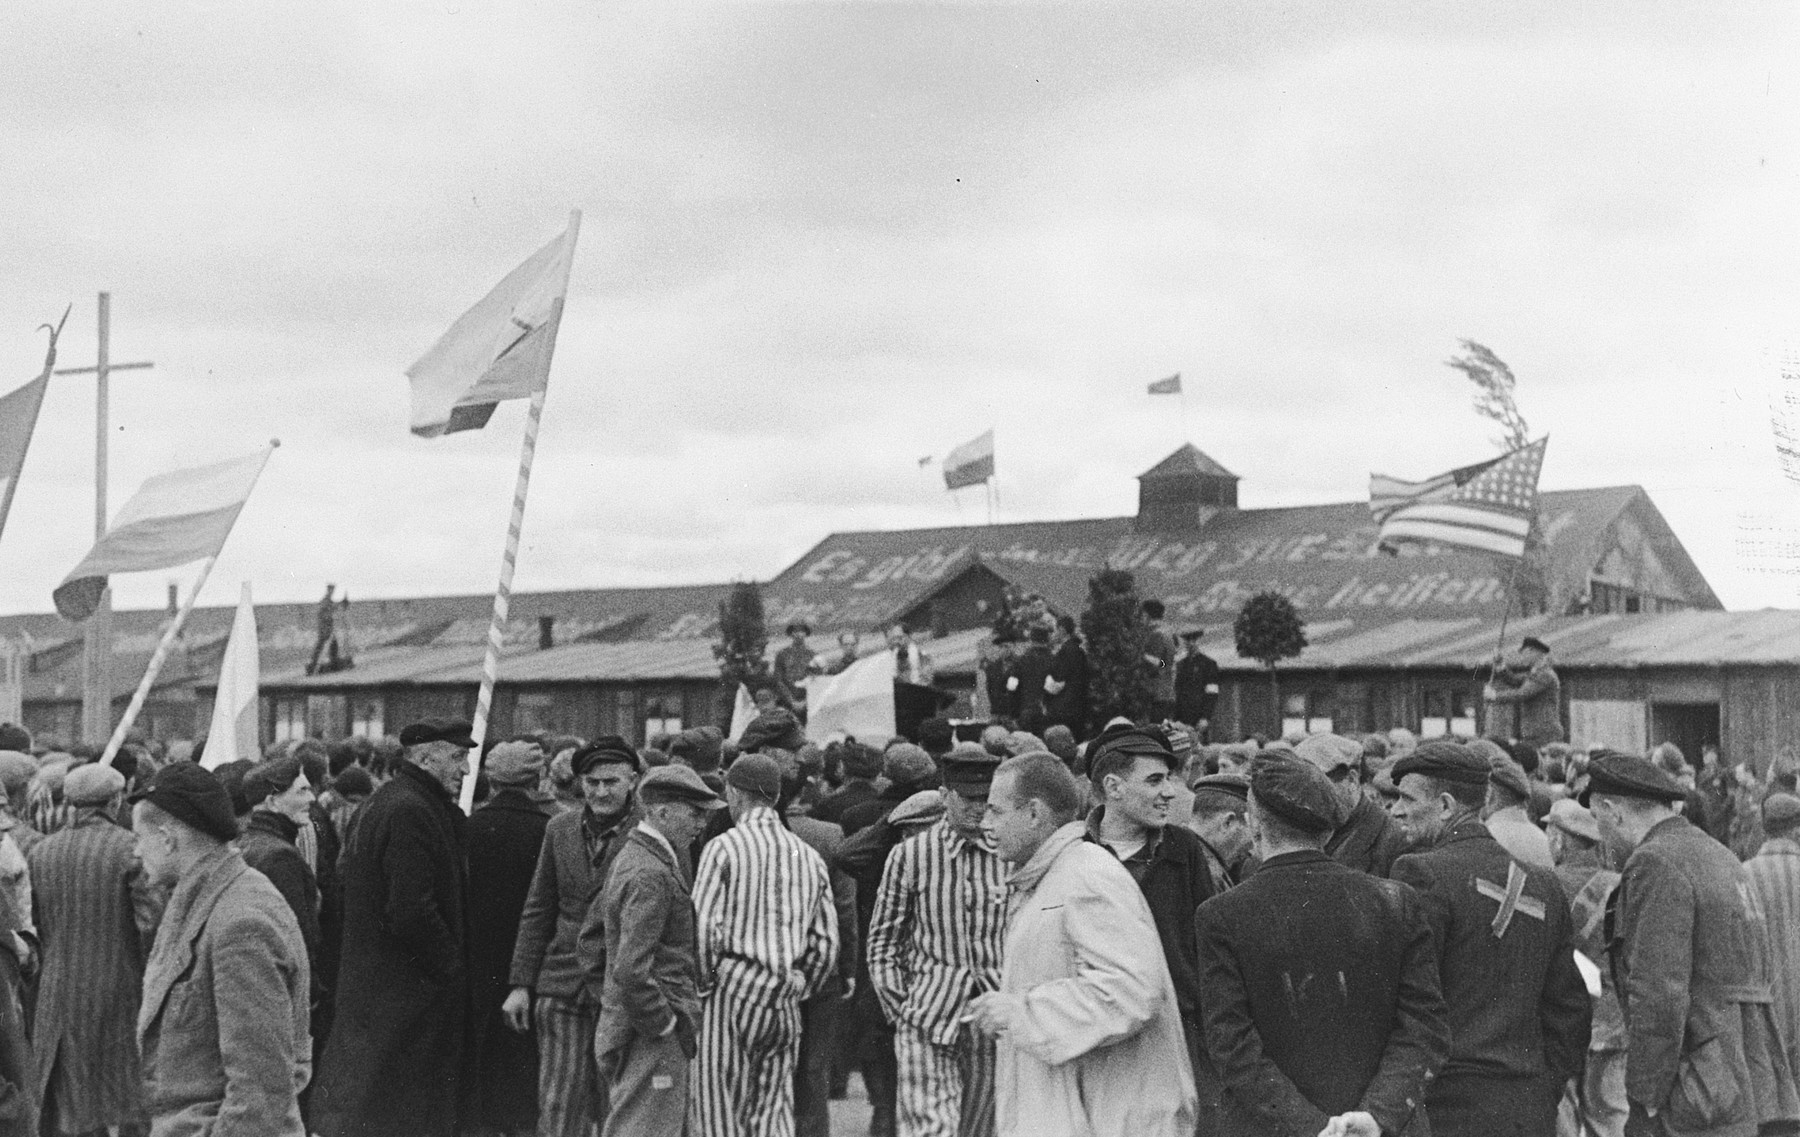 Survivors waving flags of different nationalities flock to an outdoor Jewish memorial service in the liberated Dachau concentration camp.